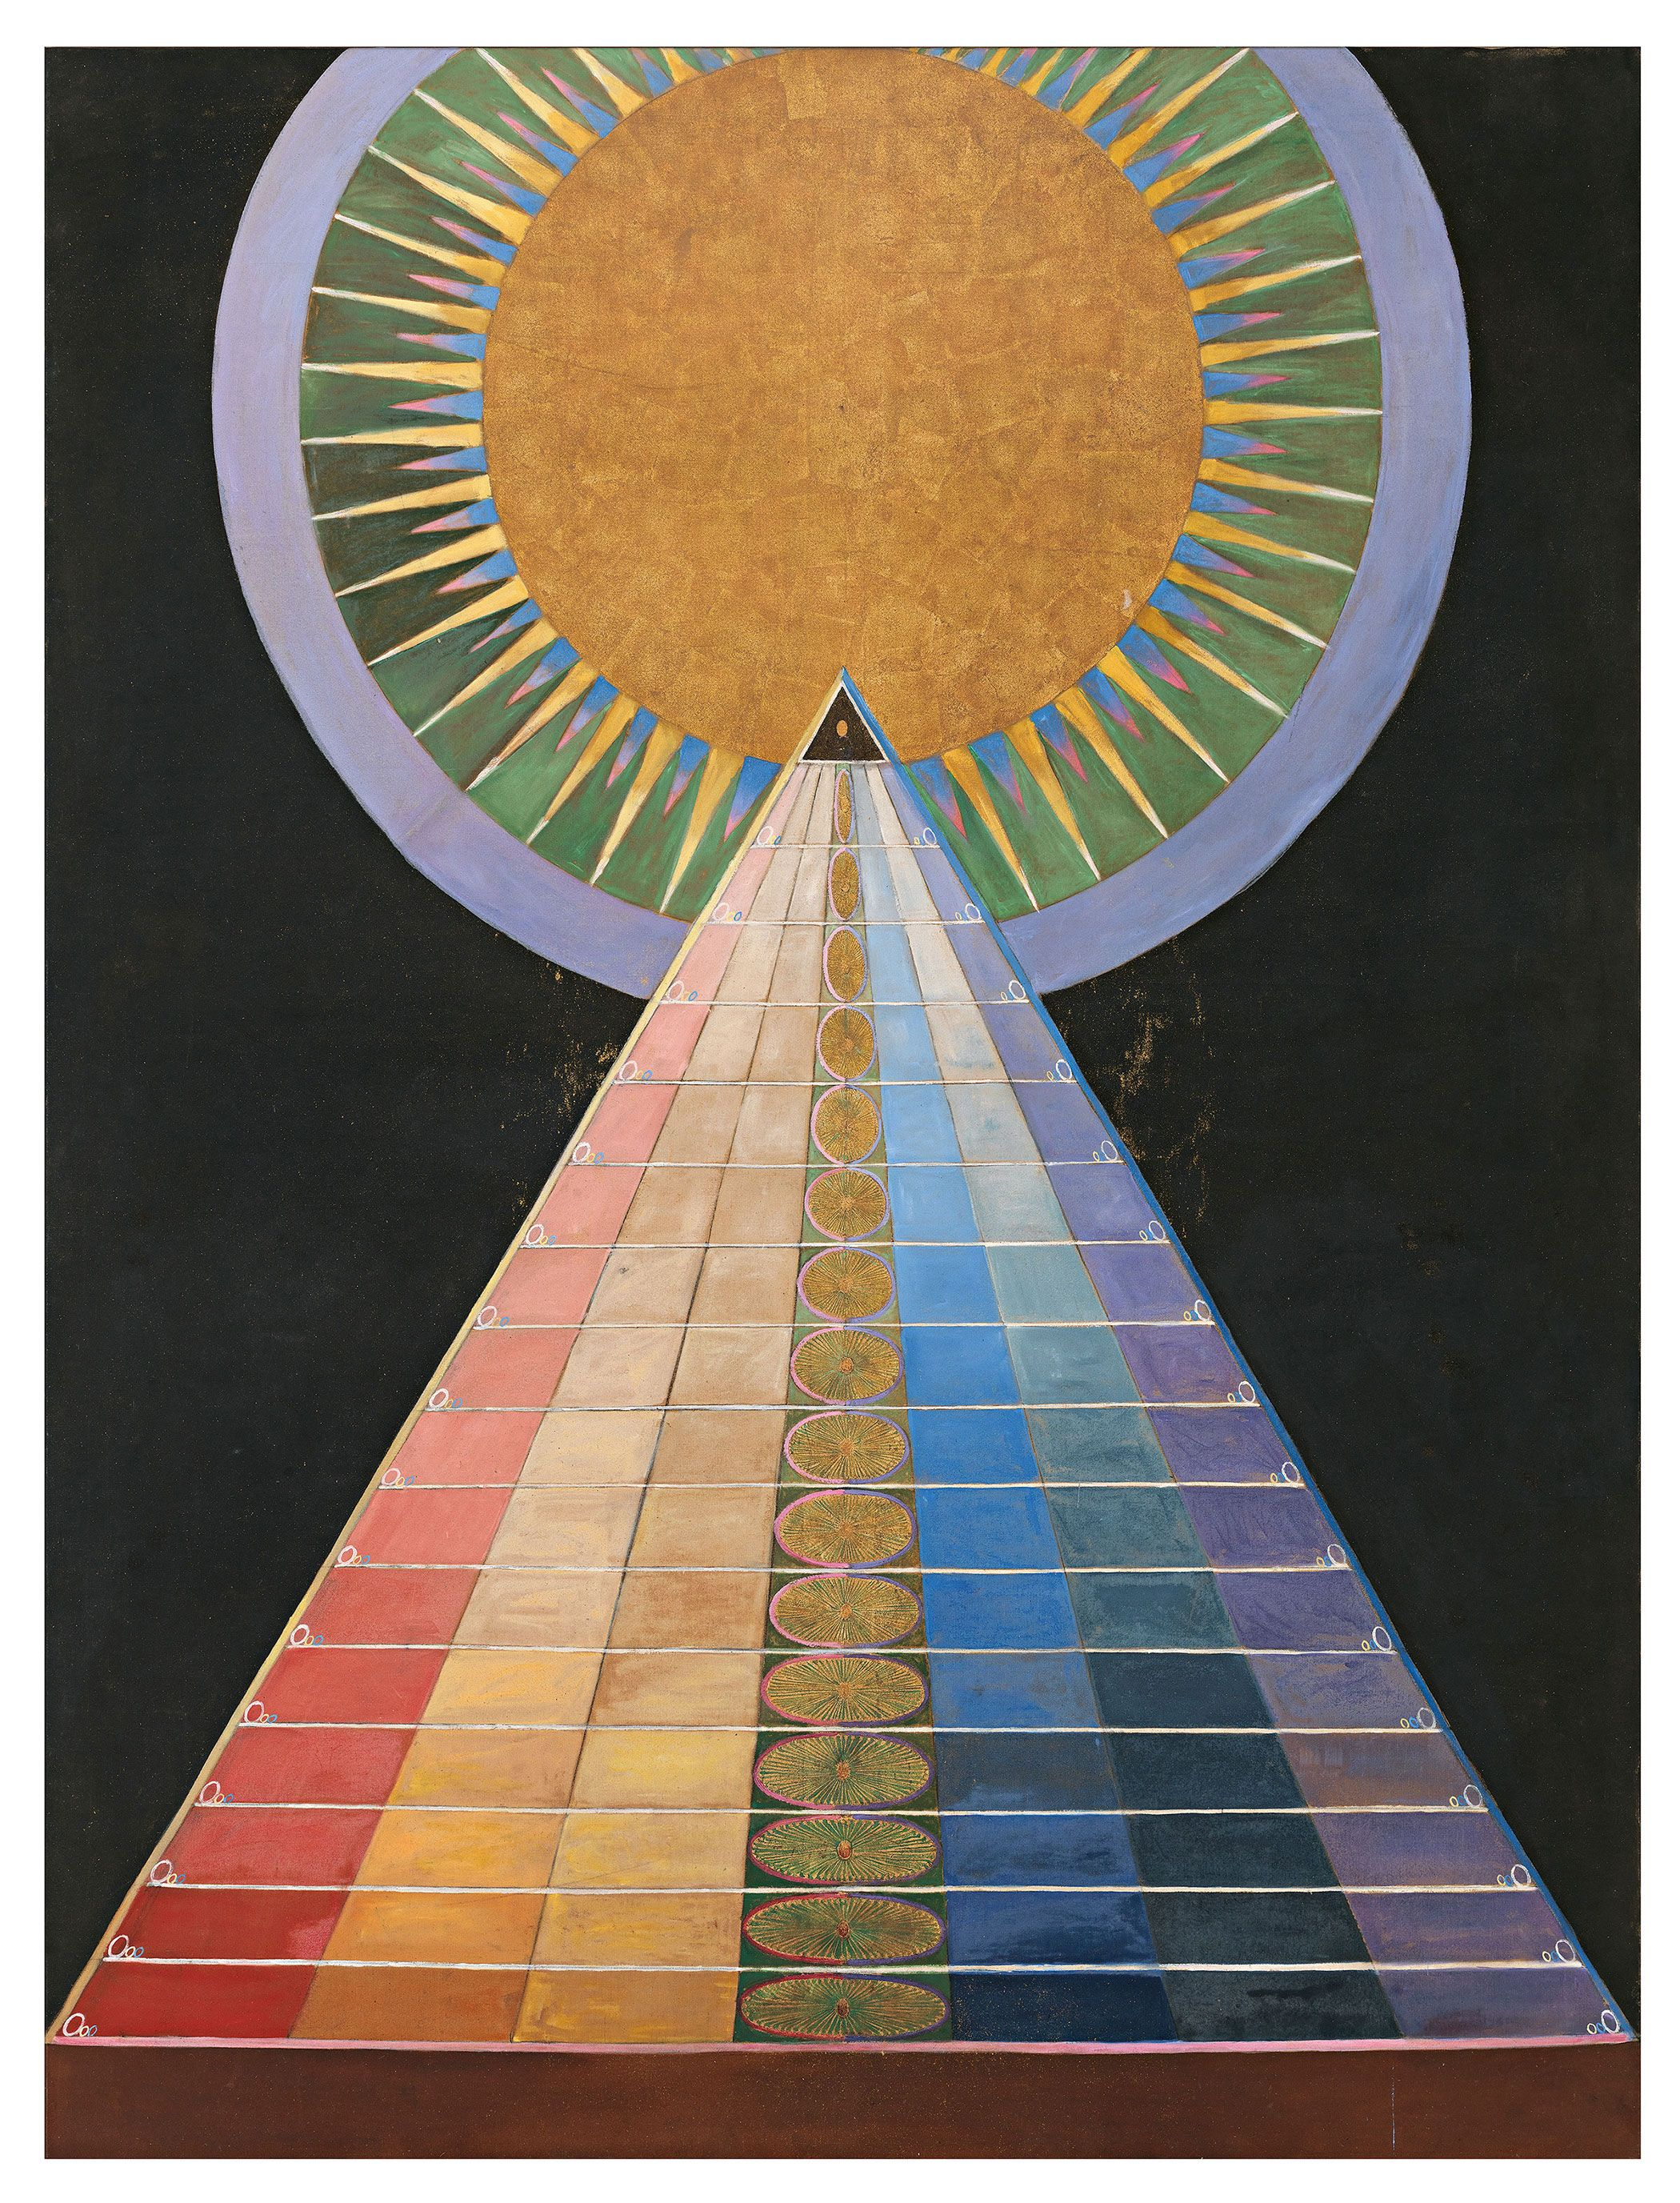 A new Hilma af Klint documentary was released online.